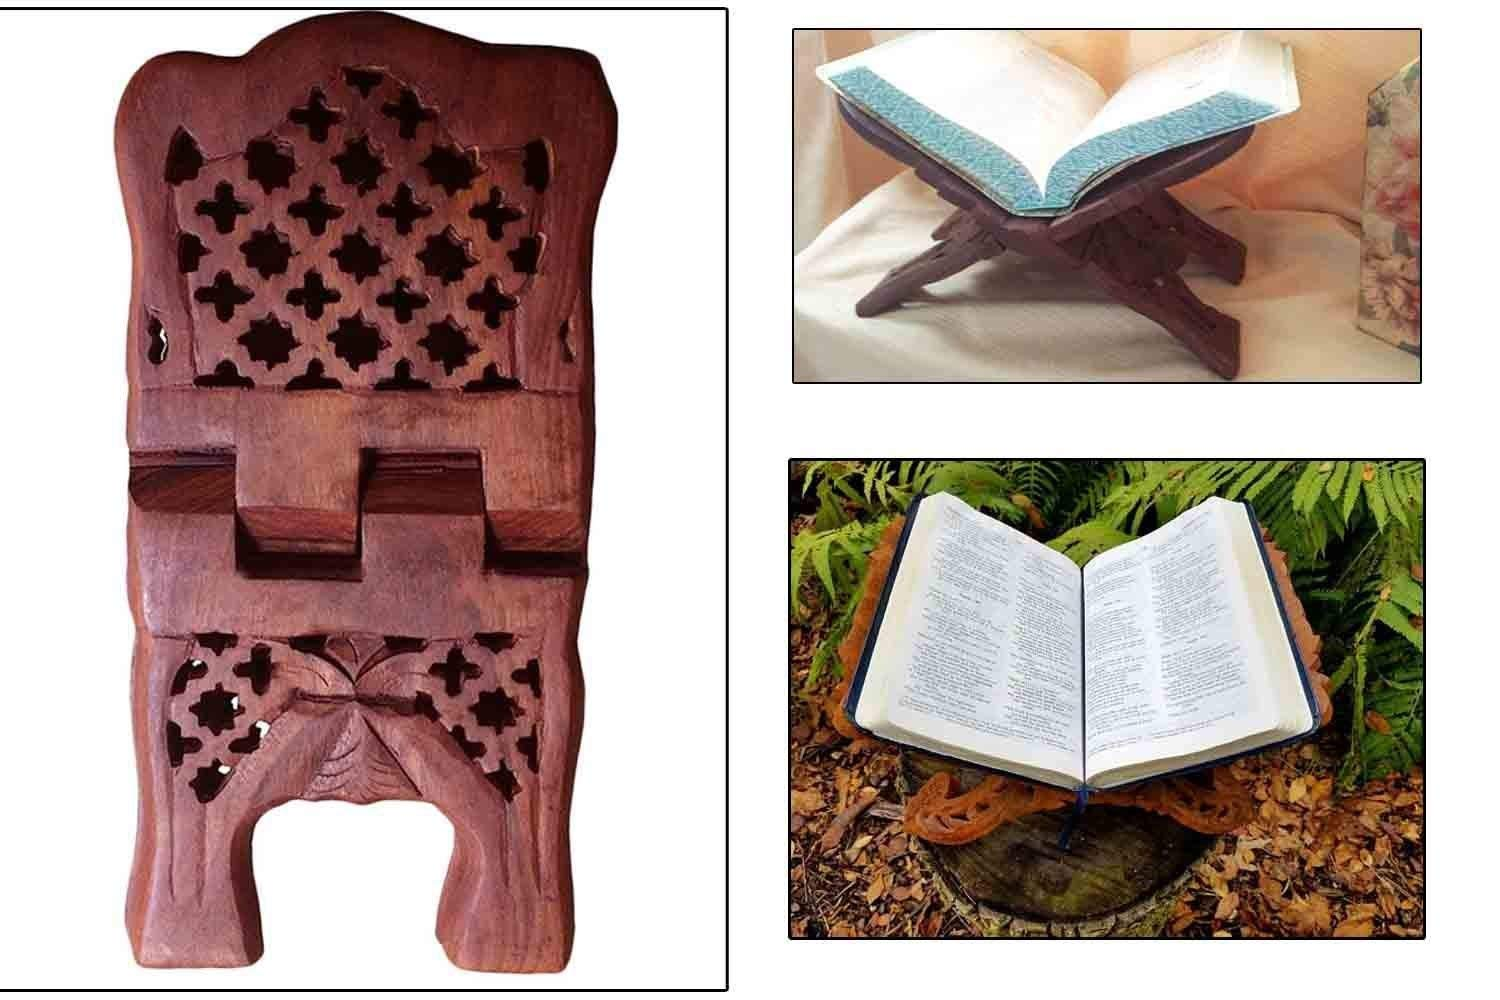 PMK Wooden Book Stand With Carving net Design Reeding Book Holder For Home//office religious Book Stand Like Kuran//bible//geeta bookshelf l 10 inch l